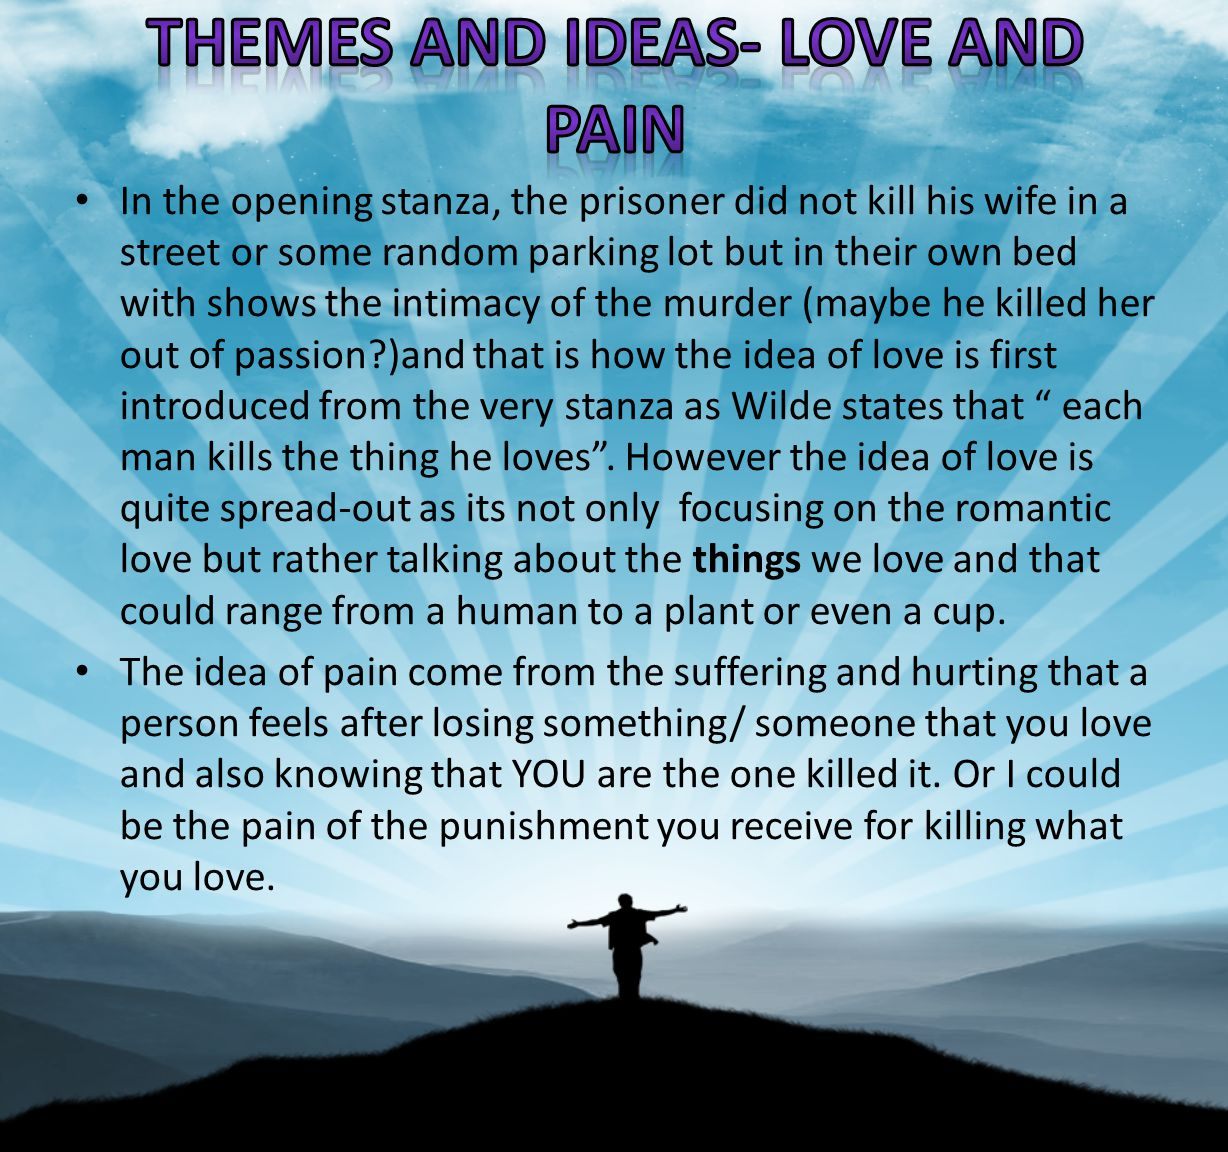 In the opening stanza, the prisoner did not kill his wife in a street or some random parking lot but in their own bed with shows the intimacy of the murder (maybe he killed her out of passion?)and that is how the idea of love is first introduced from the very stanza as Wilde states that each man kills the thing he loves.